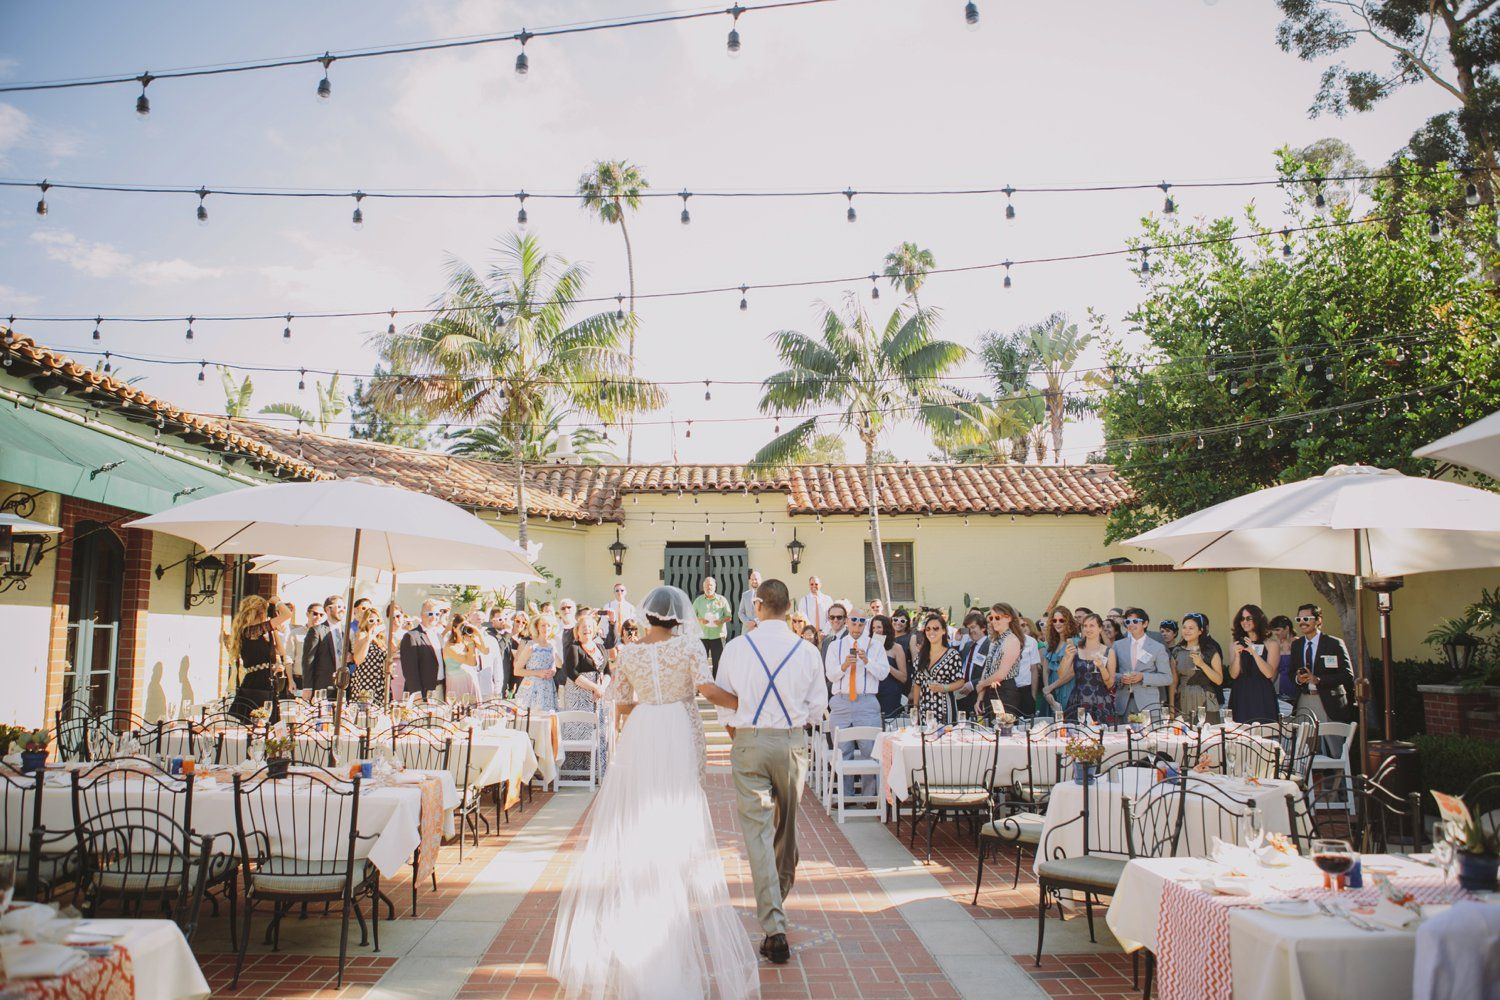 catalina country club wedding | weddings: ceremony | Pinterest ...